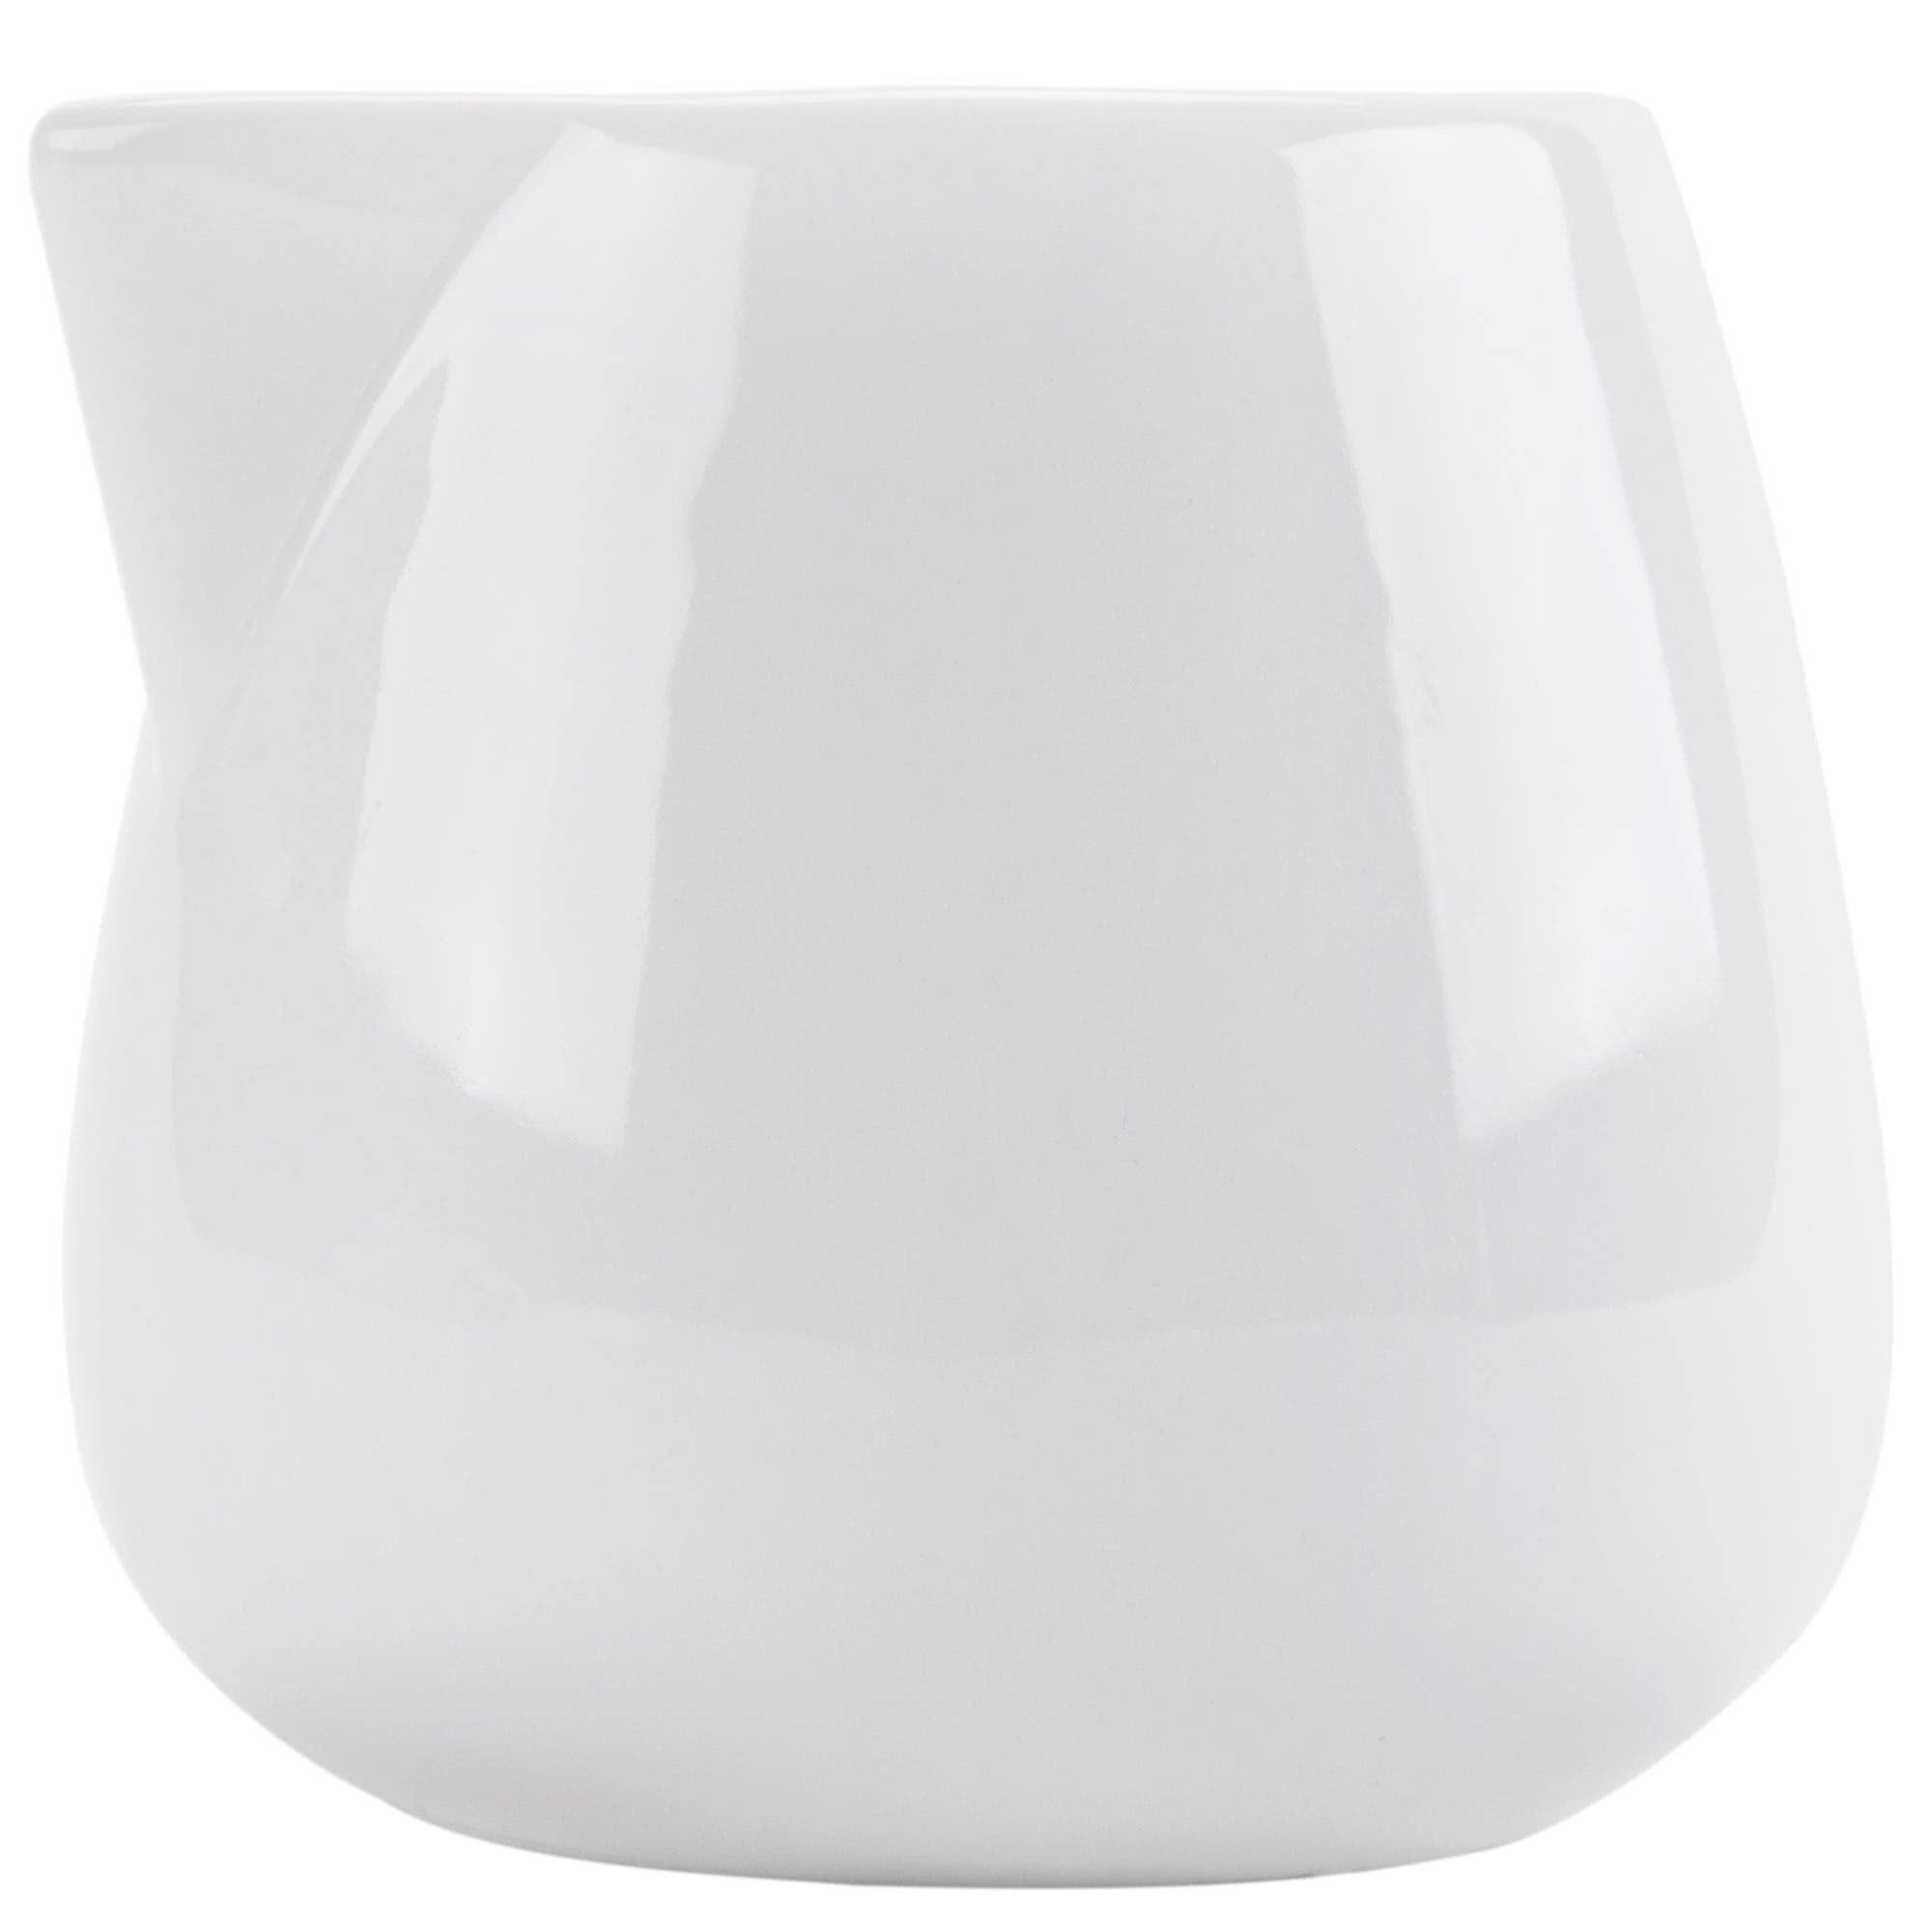 Tabletop King PC-206 Bright White Porcelain 6 oz. Creamer - 36/Case